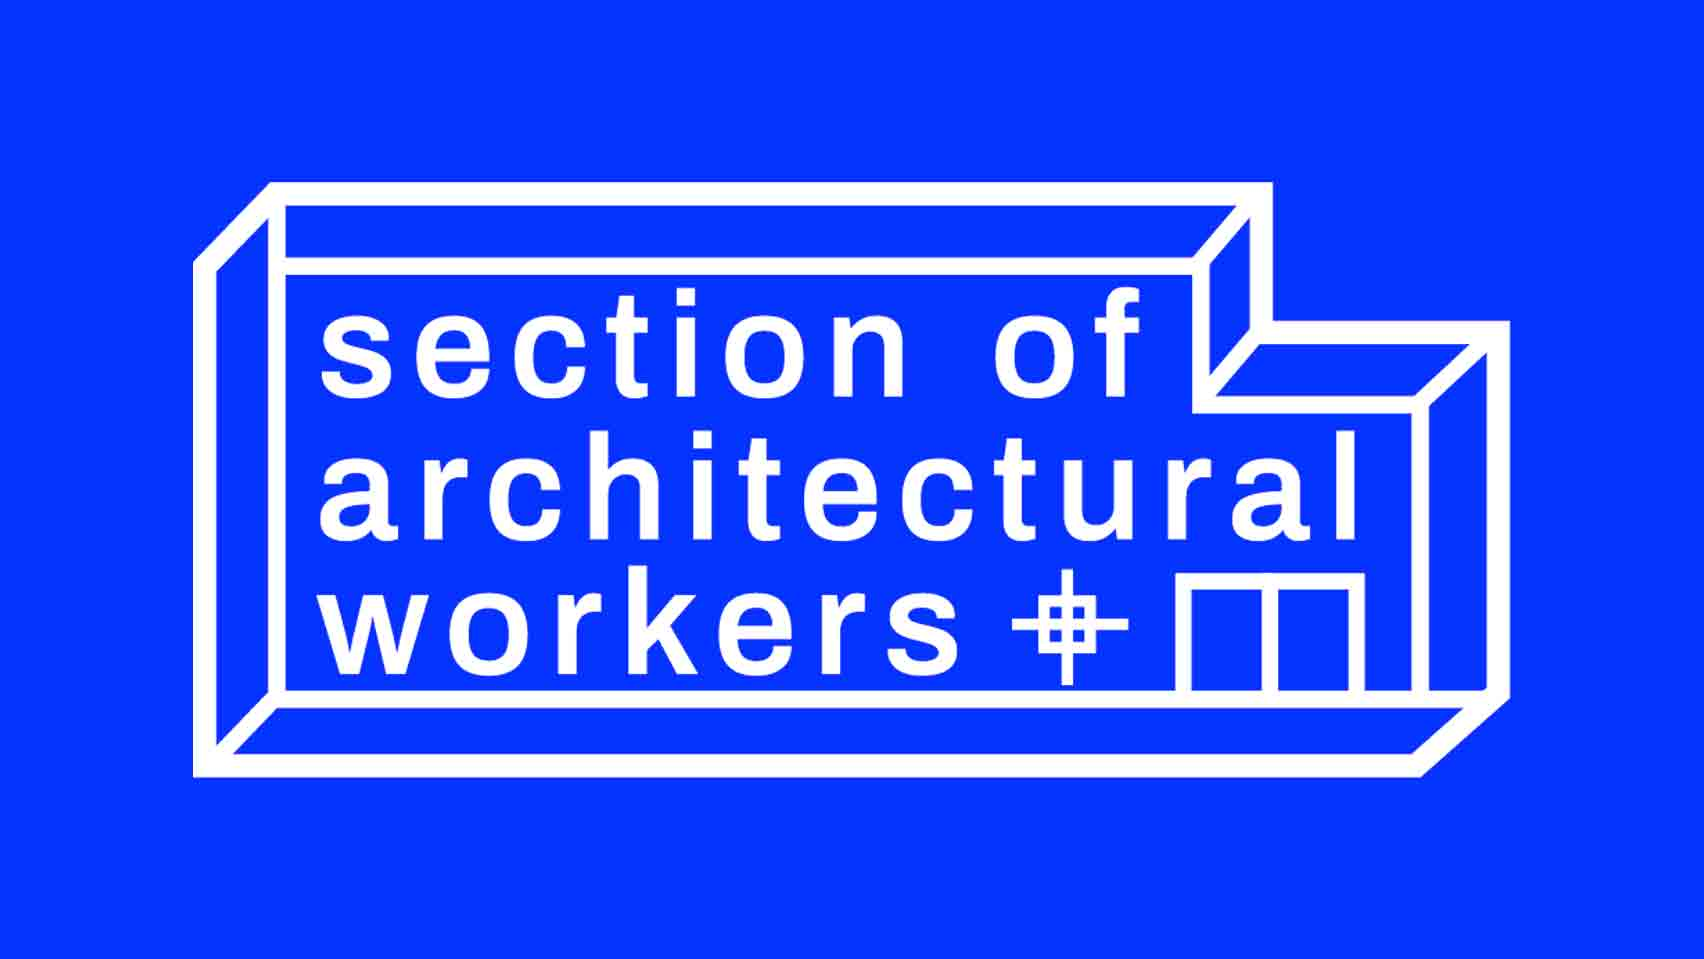 Architecture workers are being exploited during the pandemic, says UVW-SAW - sheet 1